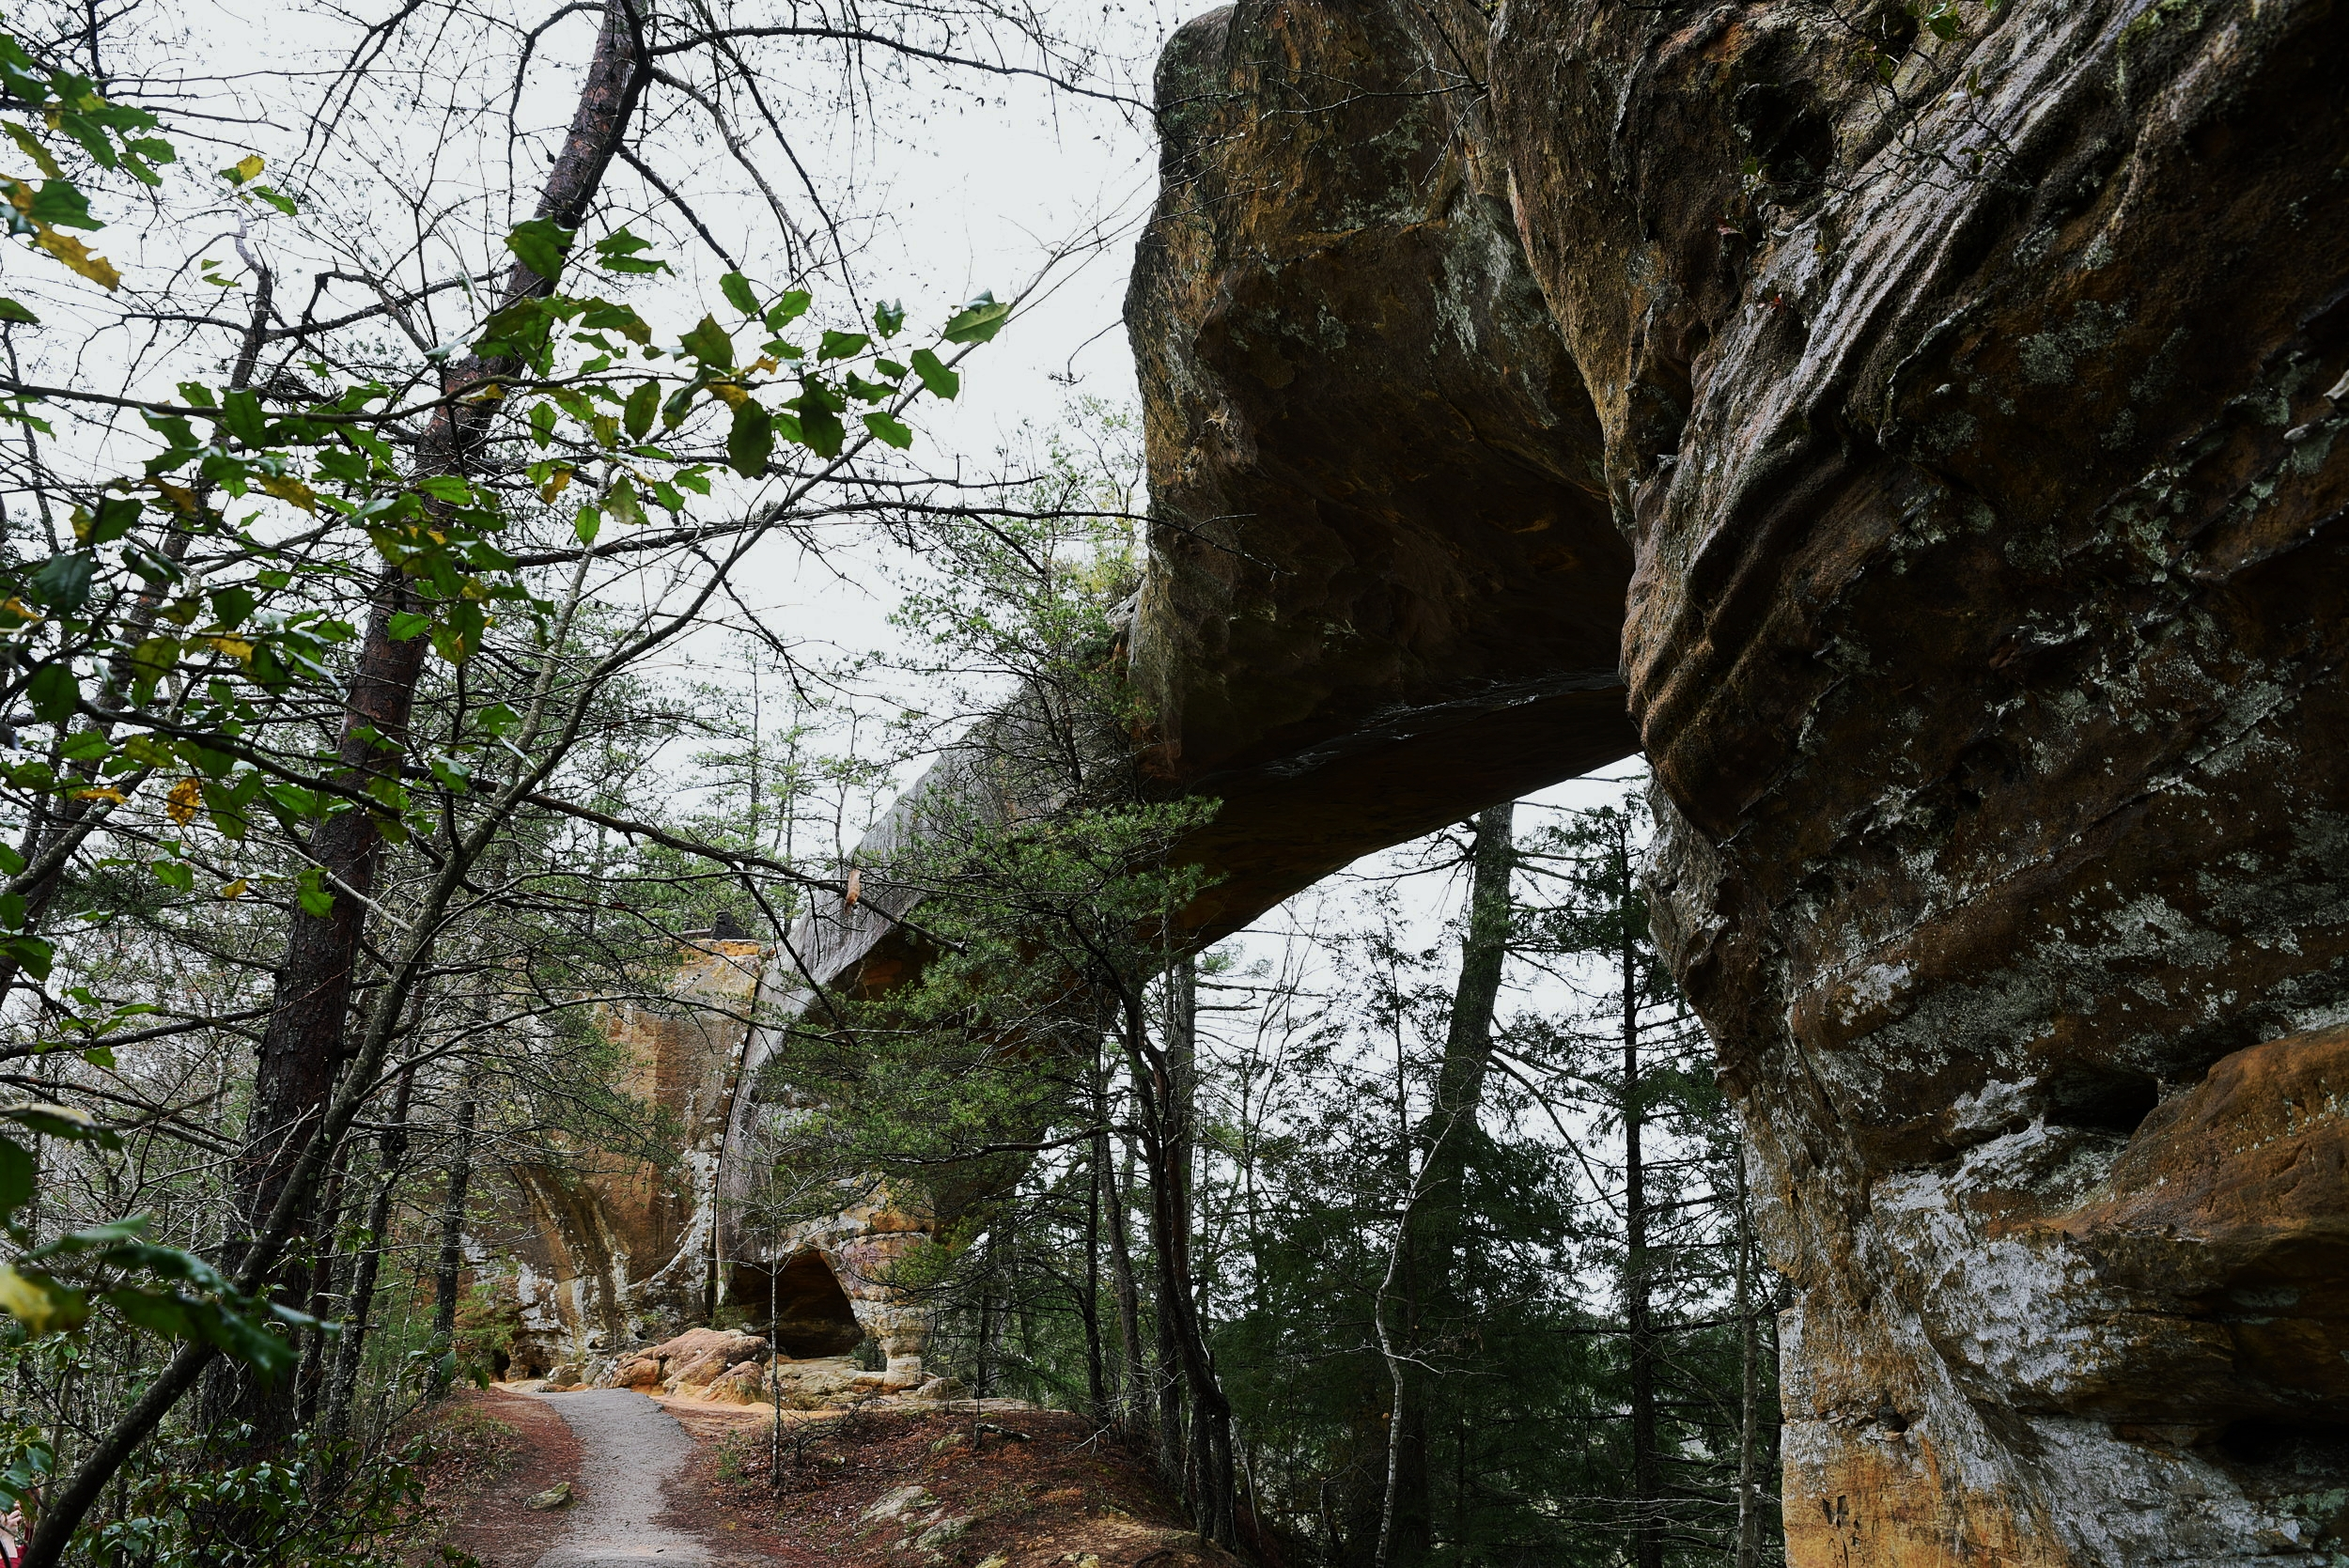 The natural sandstone arches and rock formations in Kentucky were a huge surprise to us.